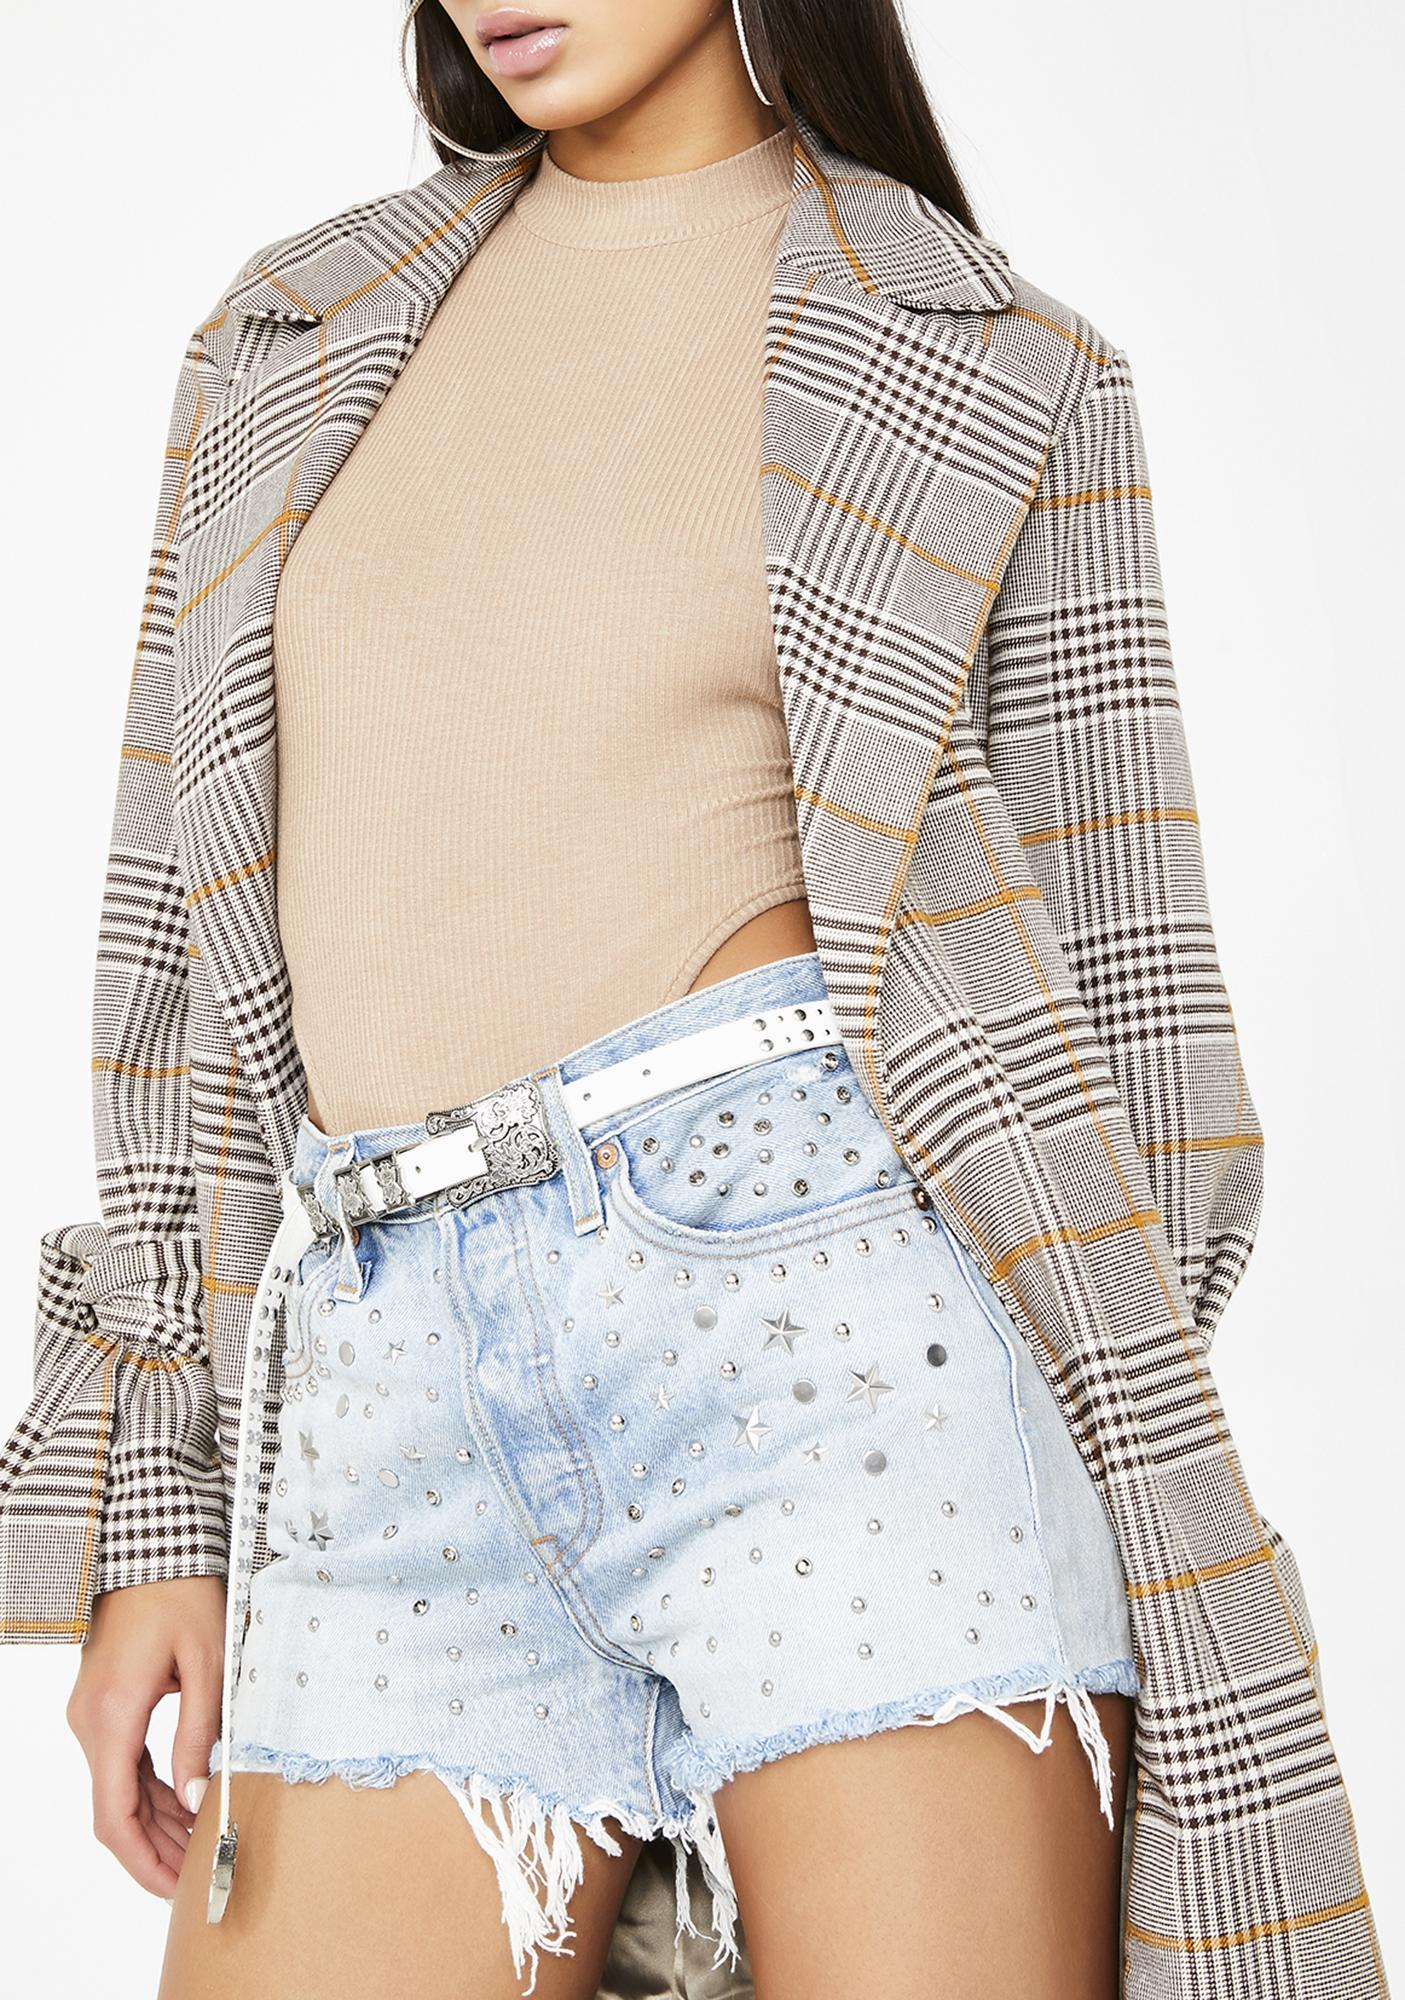 Levis Studded 501 High Rise Shorts